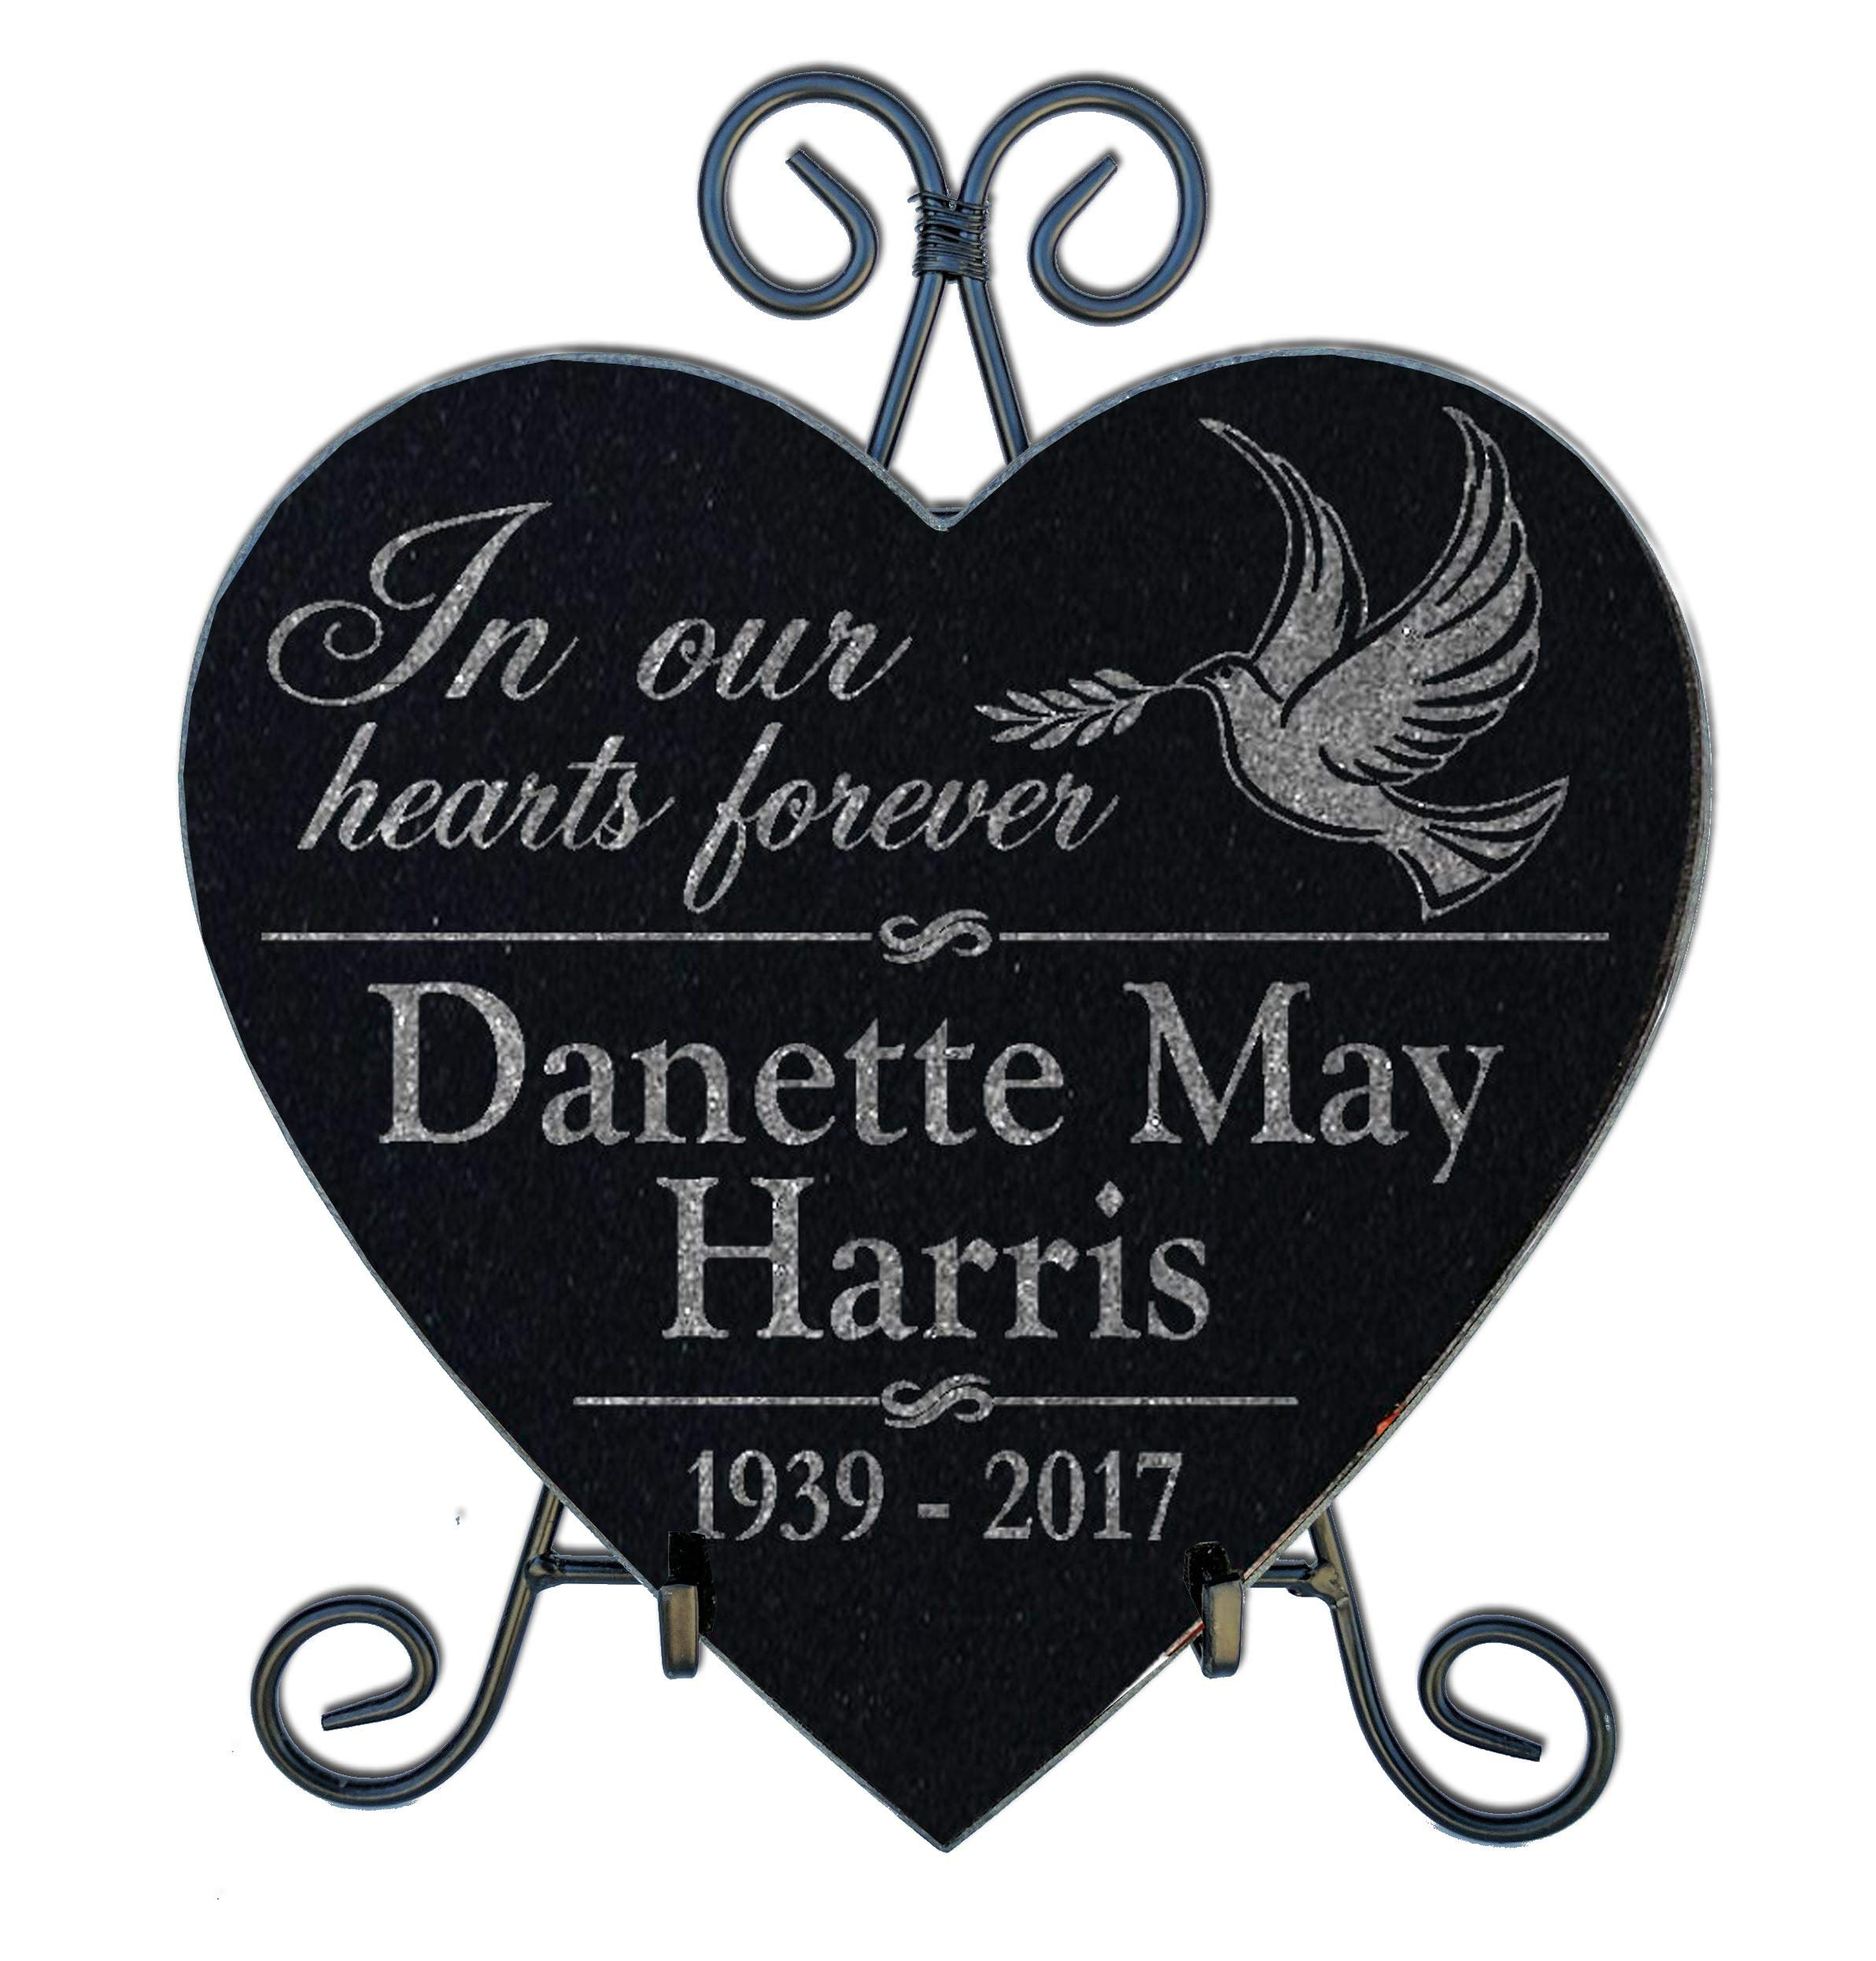 Personalized-Pets-by-StockingFactory Heart in Our Hearts Forever Granite Memorial Stone in Loving Memory of Mom Dad Family Loss Sympathy Remembrance Garden Grave Marker with Stand by Personalized-Pets-by-StockingFactory